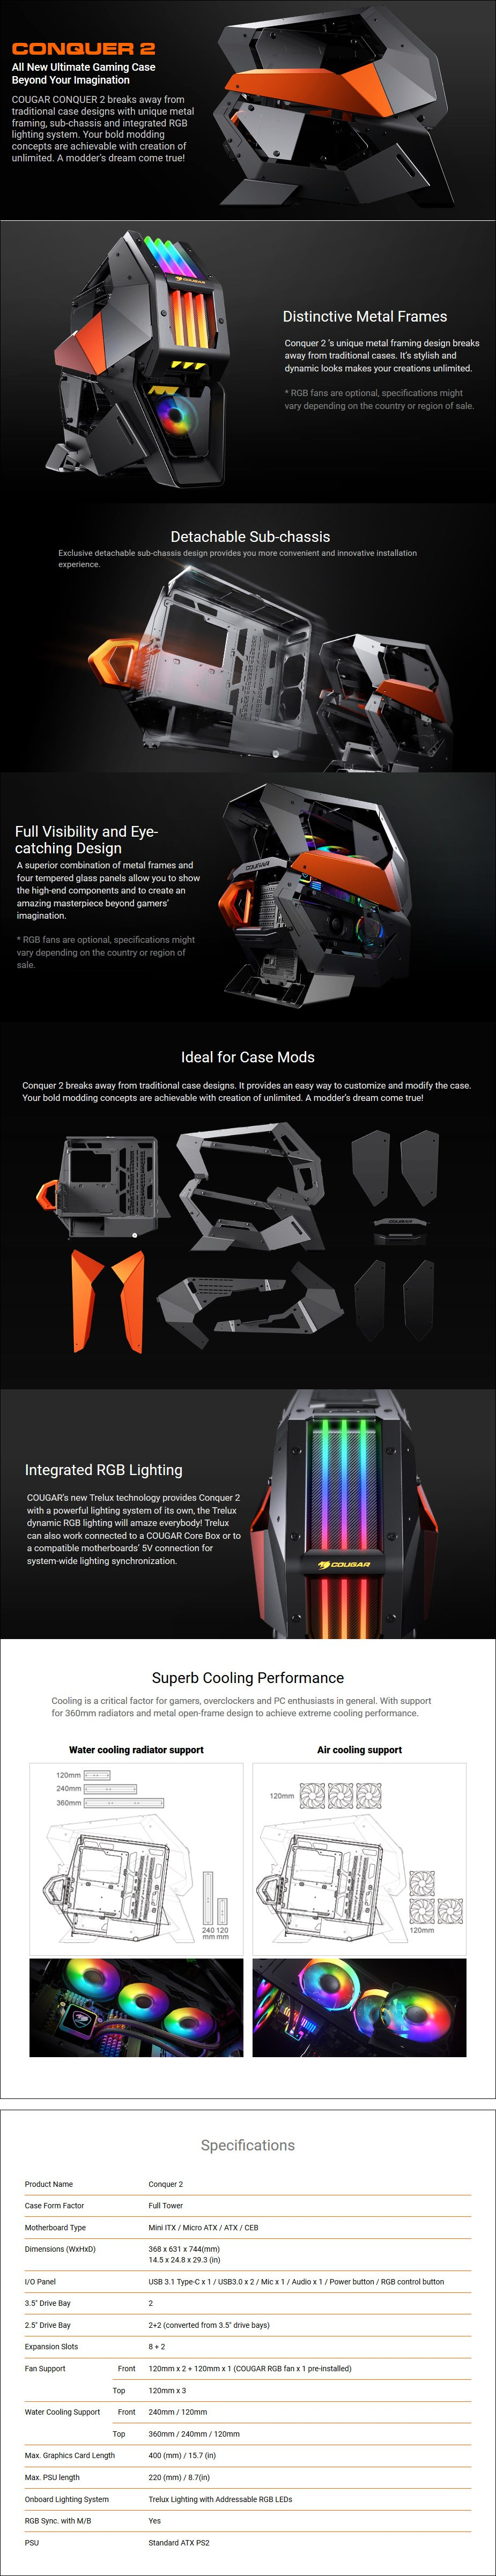 Cougar Conquer 2 RGB Tempered Glass Full-Tower ATX Case - Overview 1